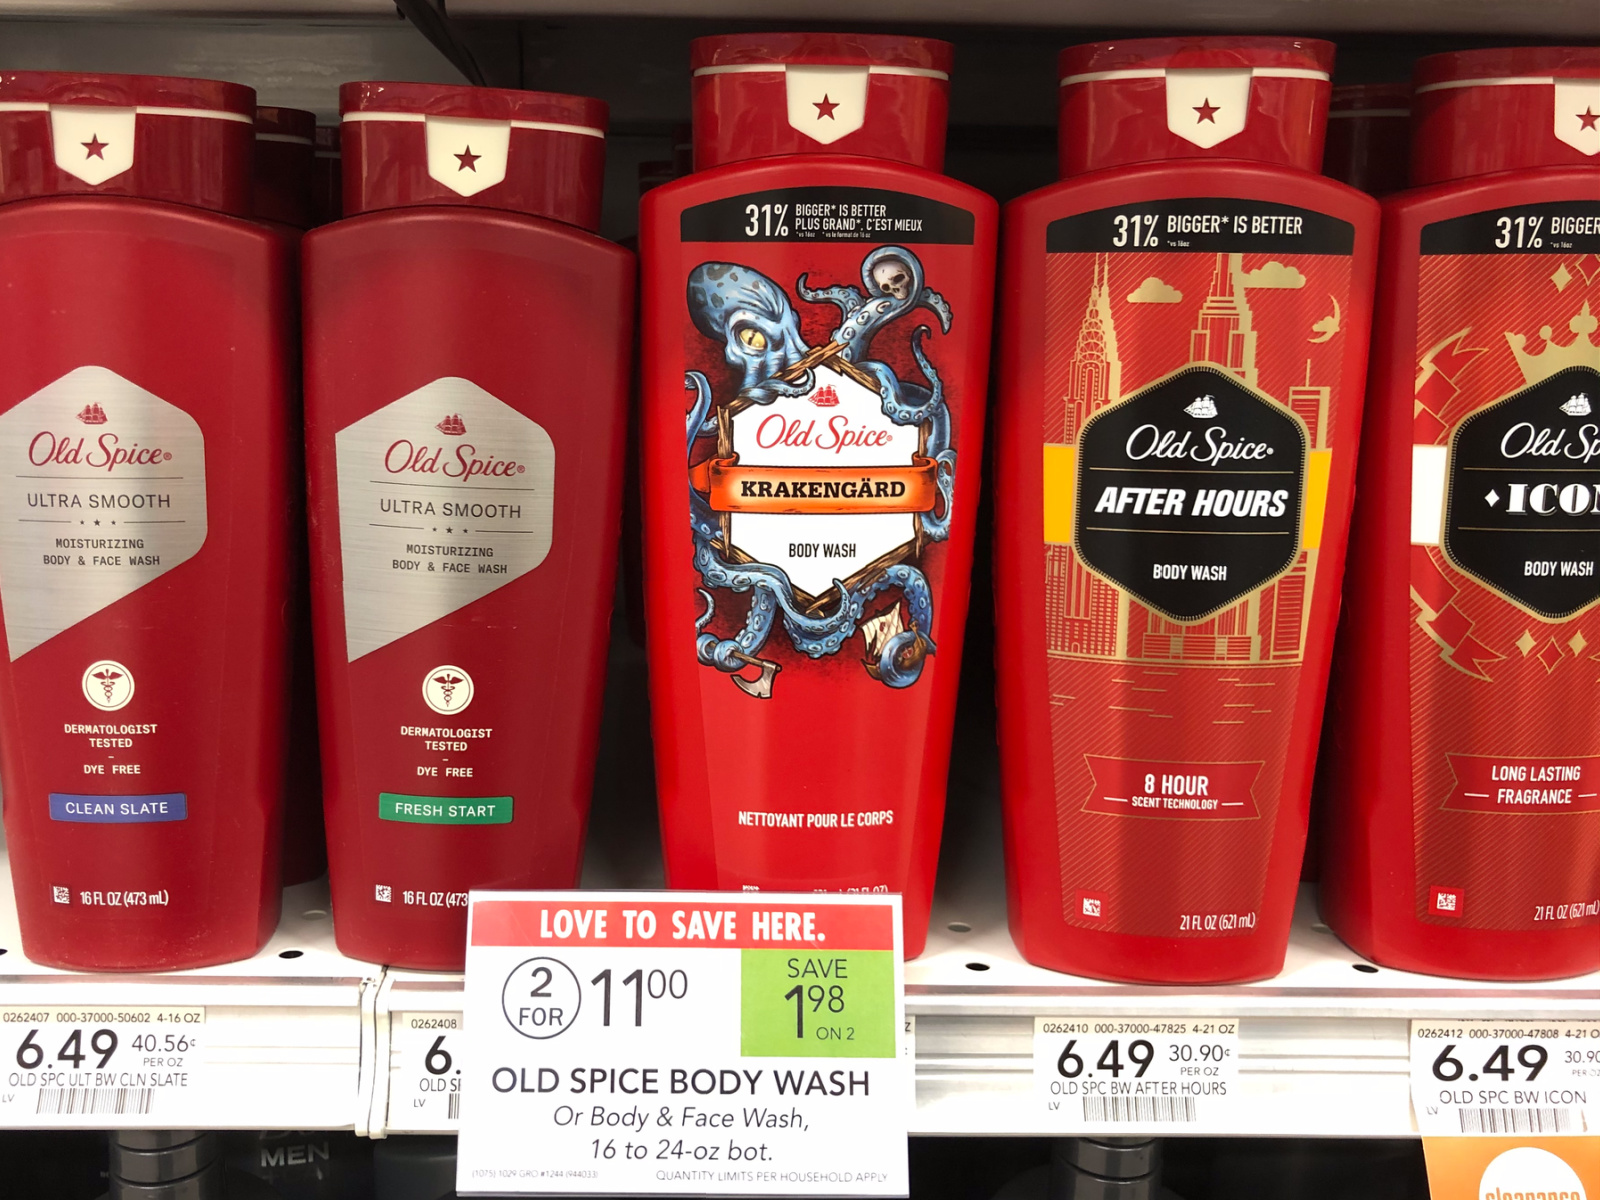 Buy $15 Worth of Participating P&G Products And Get A $5 Publix Gift Card Instantly! on I Heart Publix 3